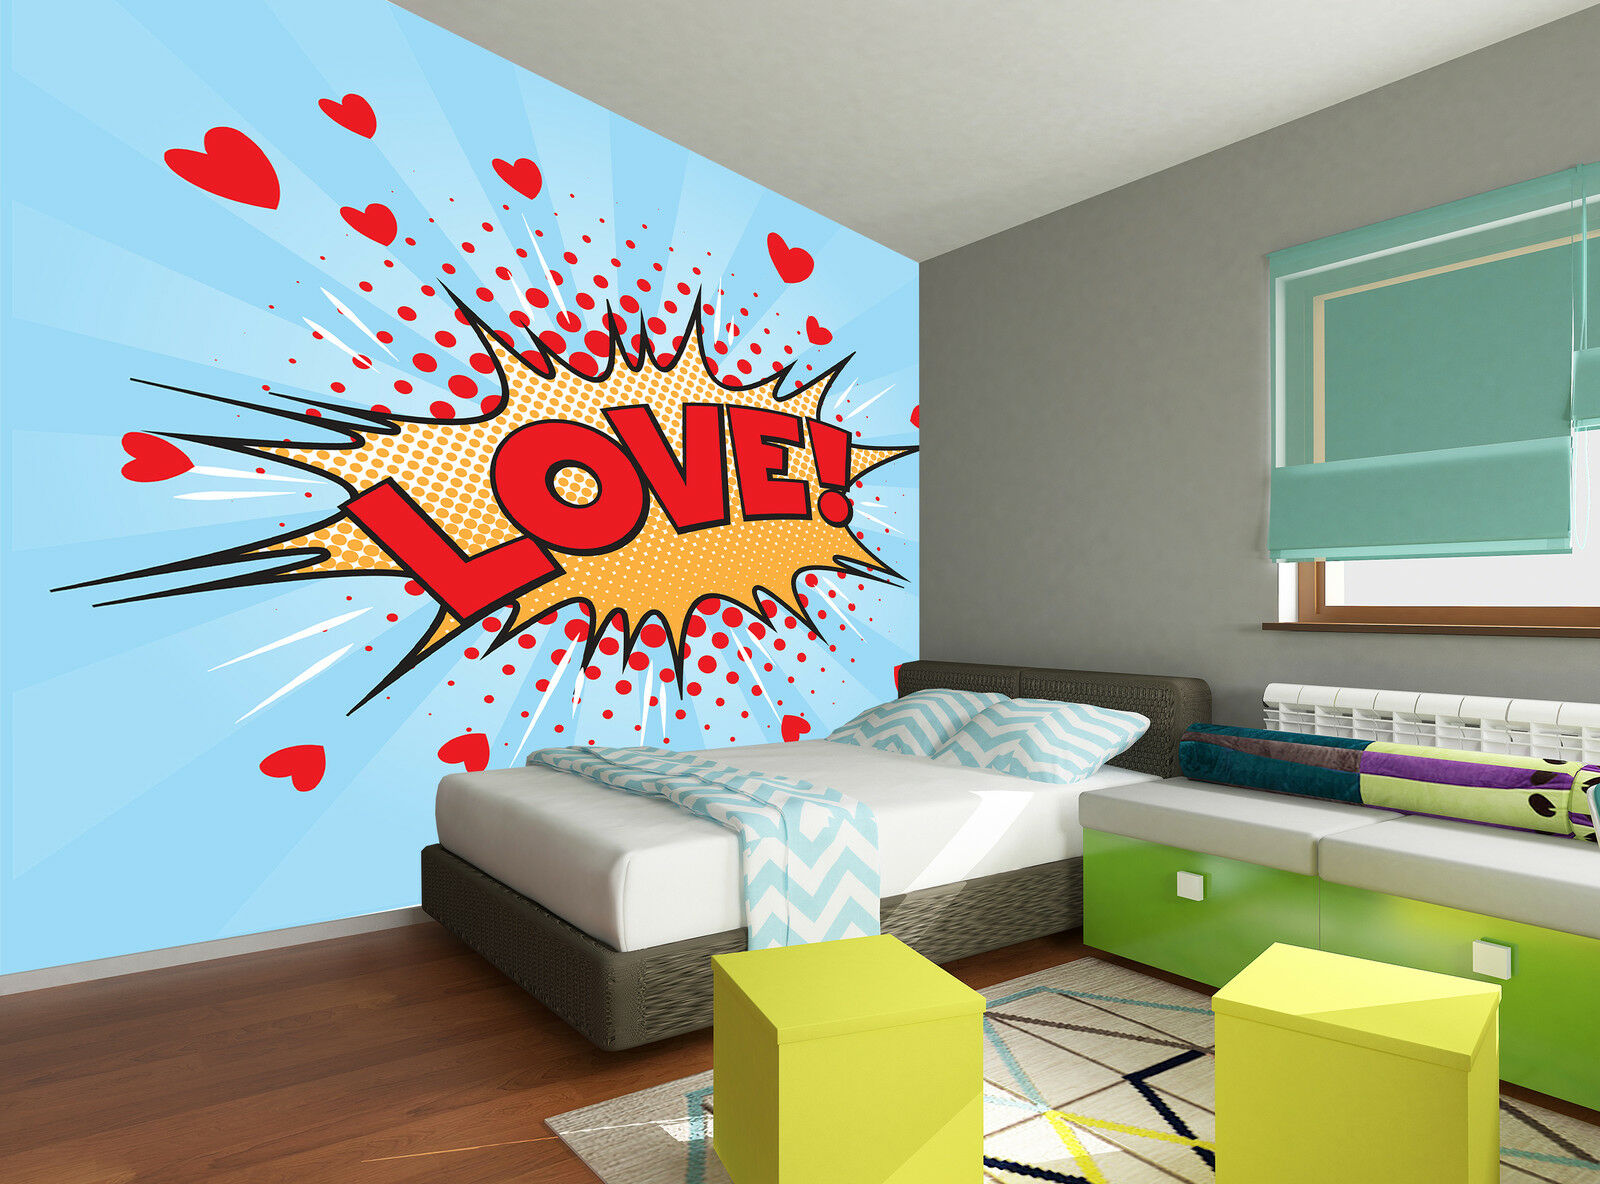 Love Pop Art  Wall Mural Photo Wallpaper GIANT WALL DECOR PAPER POSTER FREE GLUE